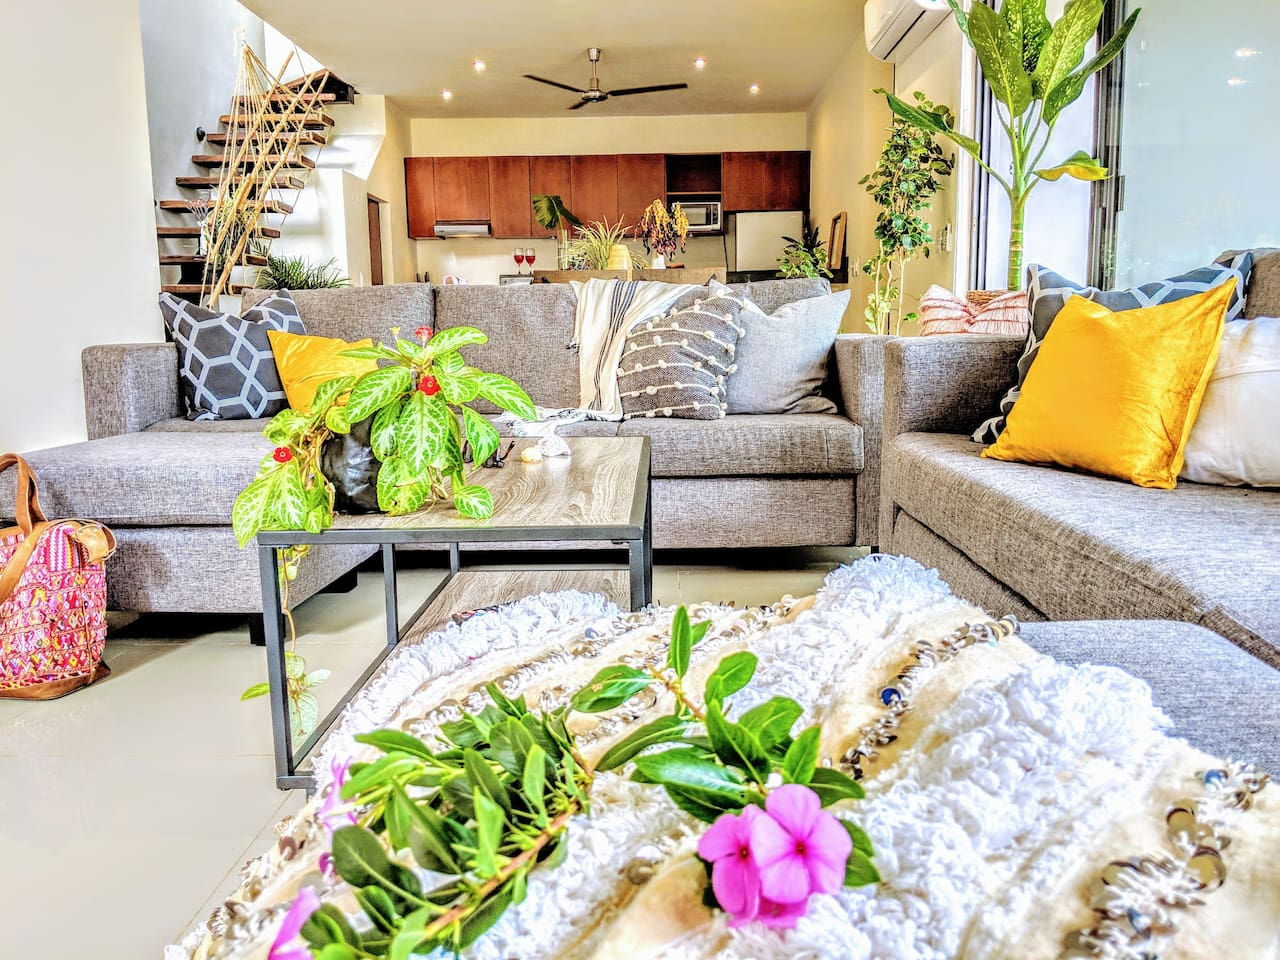 Welcome home to your modern house in the jungle!